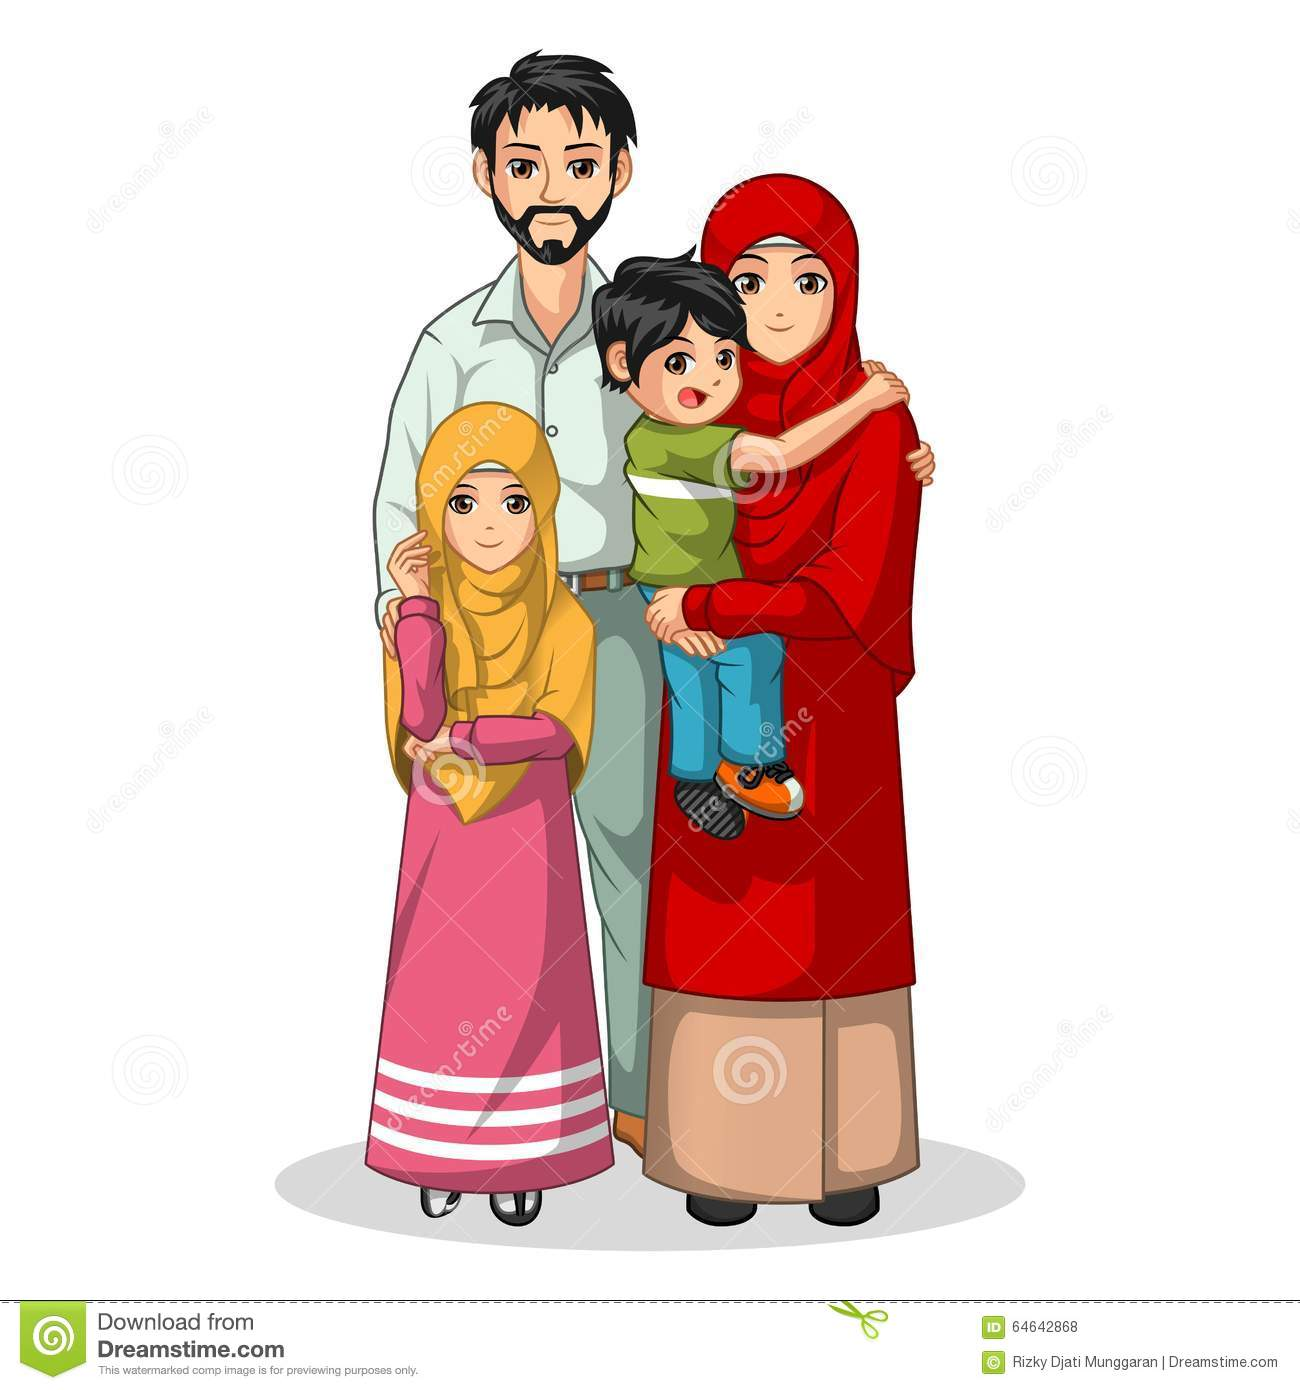 la tuque muslim girl personals Free la tuque sex dating personals  and i have a need to use my sexual talents and relieve my pent up sexual frustration as well as please one or more sexy girls.